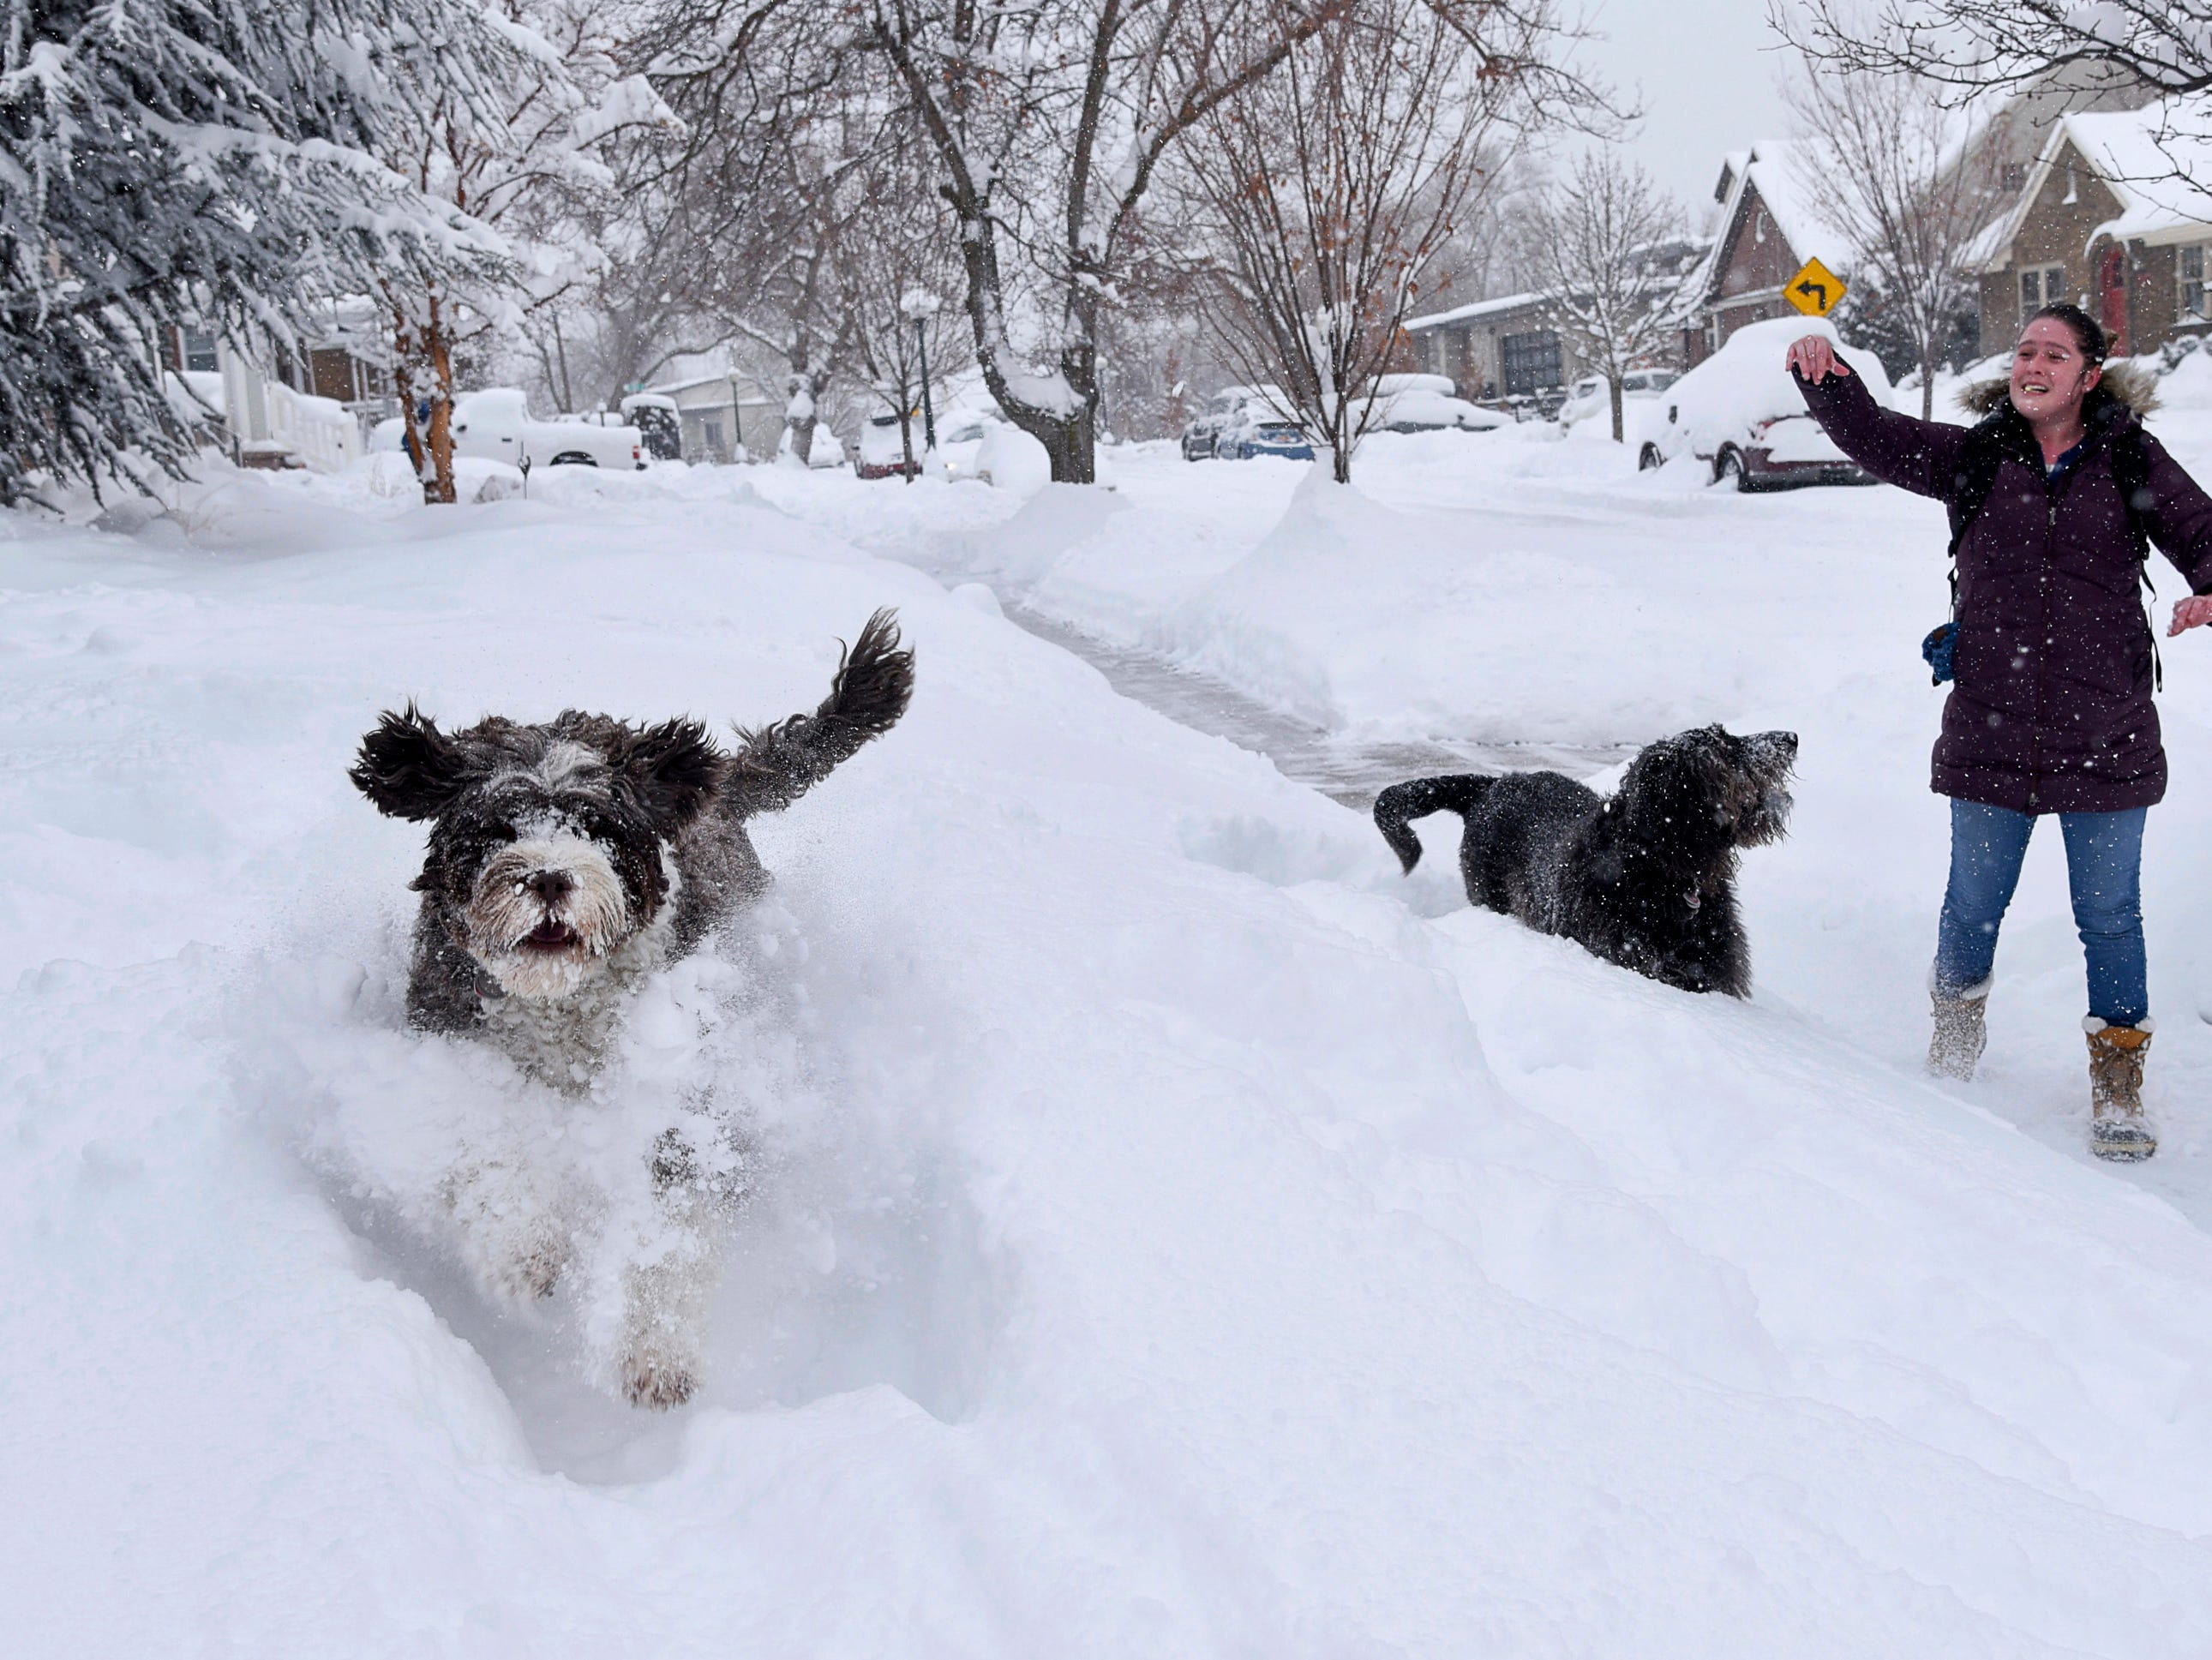 Chester and Moqui play in the snow as Rachel Haisley returns from a walk Wednesday, Feb. 6, 2019, as Salt Lake City, Utah, residents dig out following a heavy snow storm.